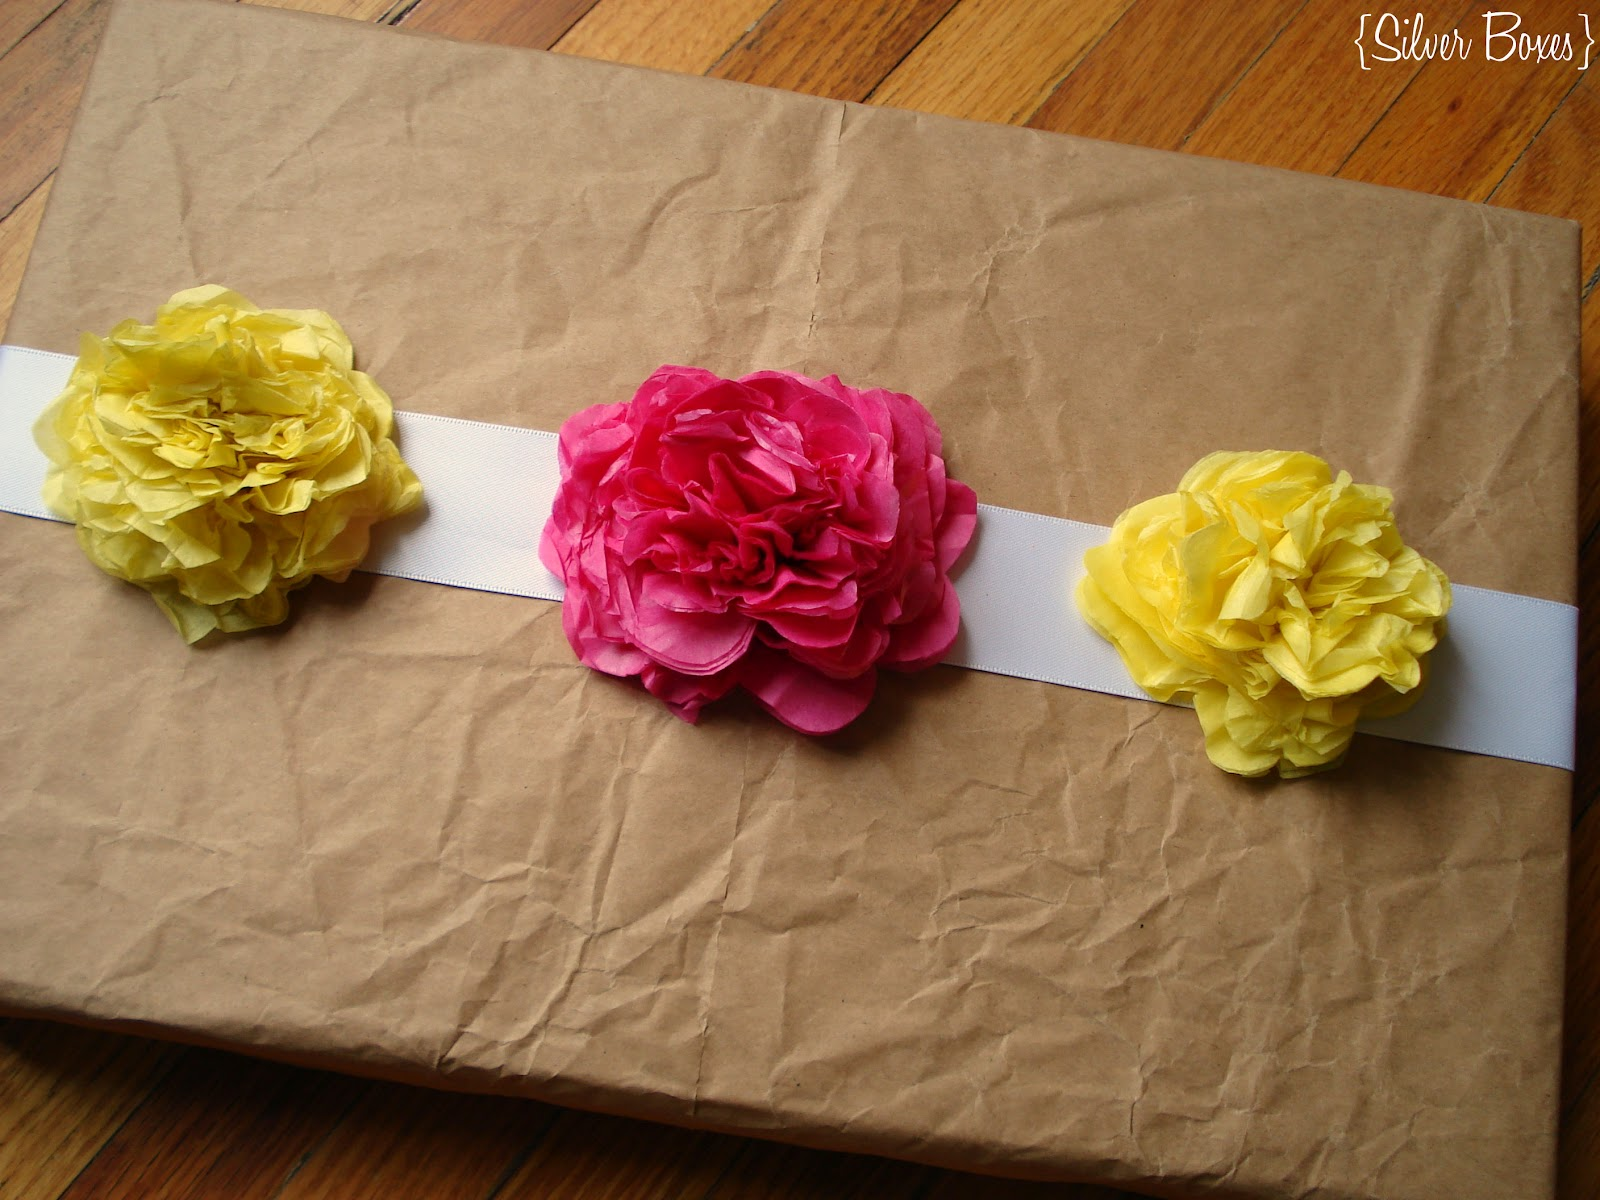 Silver Boxes Tissue Paper Flowers To Embellish A Gift Package